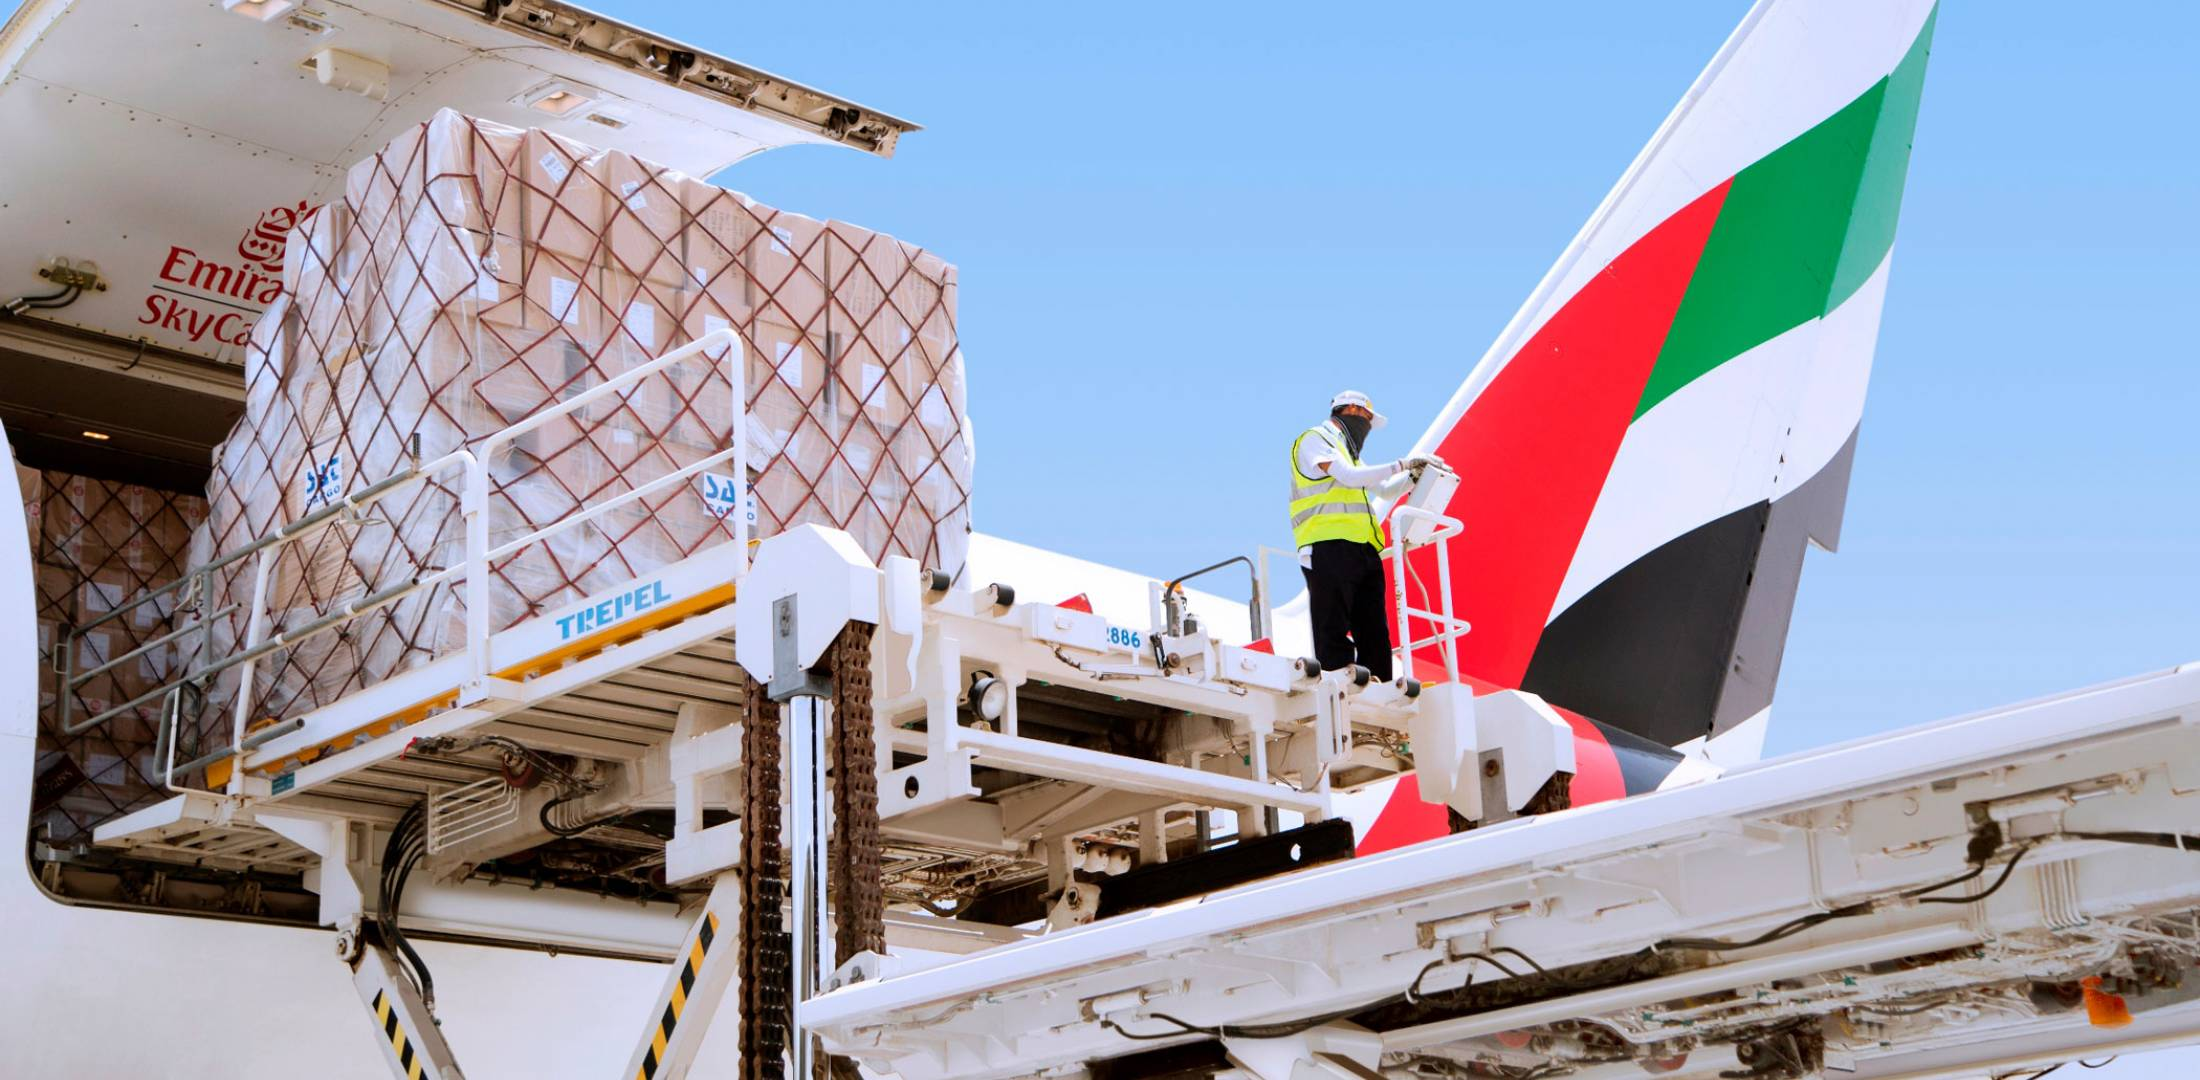 SkyCargo, Emirates's air cargo division, can carry up to 20 tonnes of cargo on passenger aircraft.